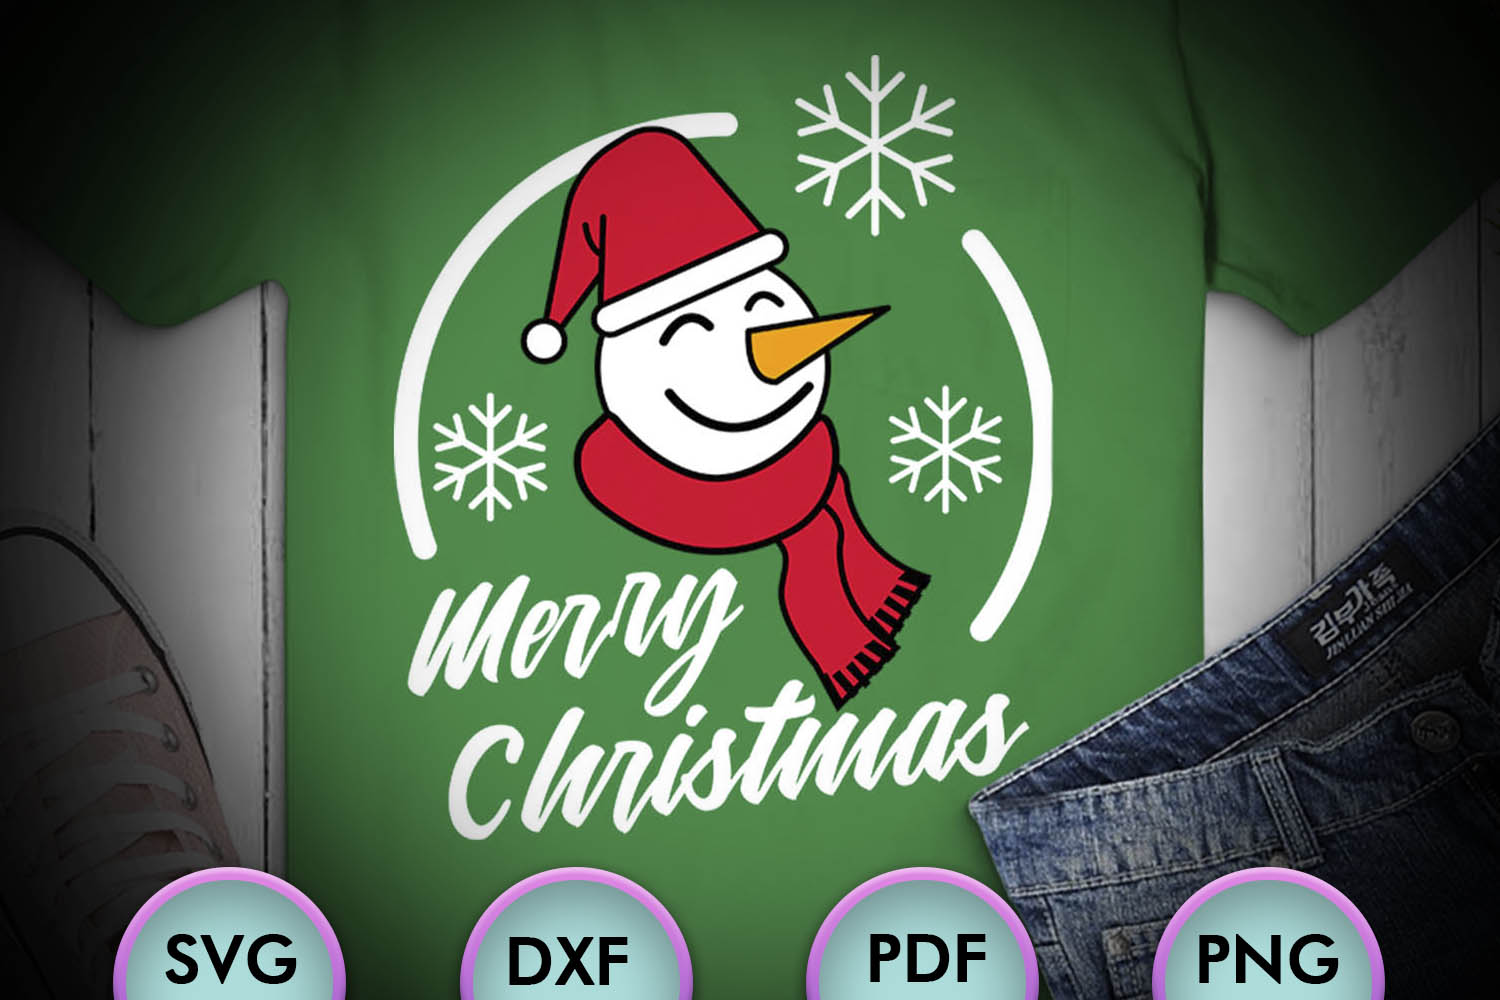 Merry Christmas SVG, Snowman SVG, Winter SVG, Carrots example image 1